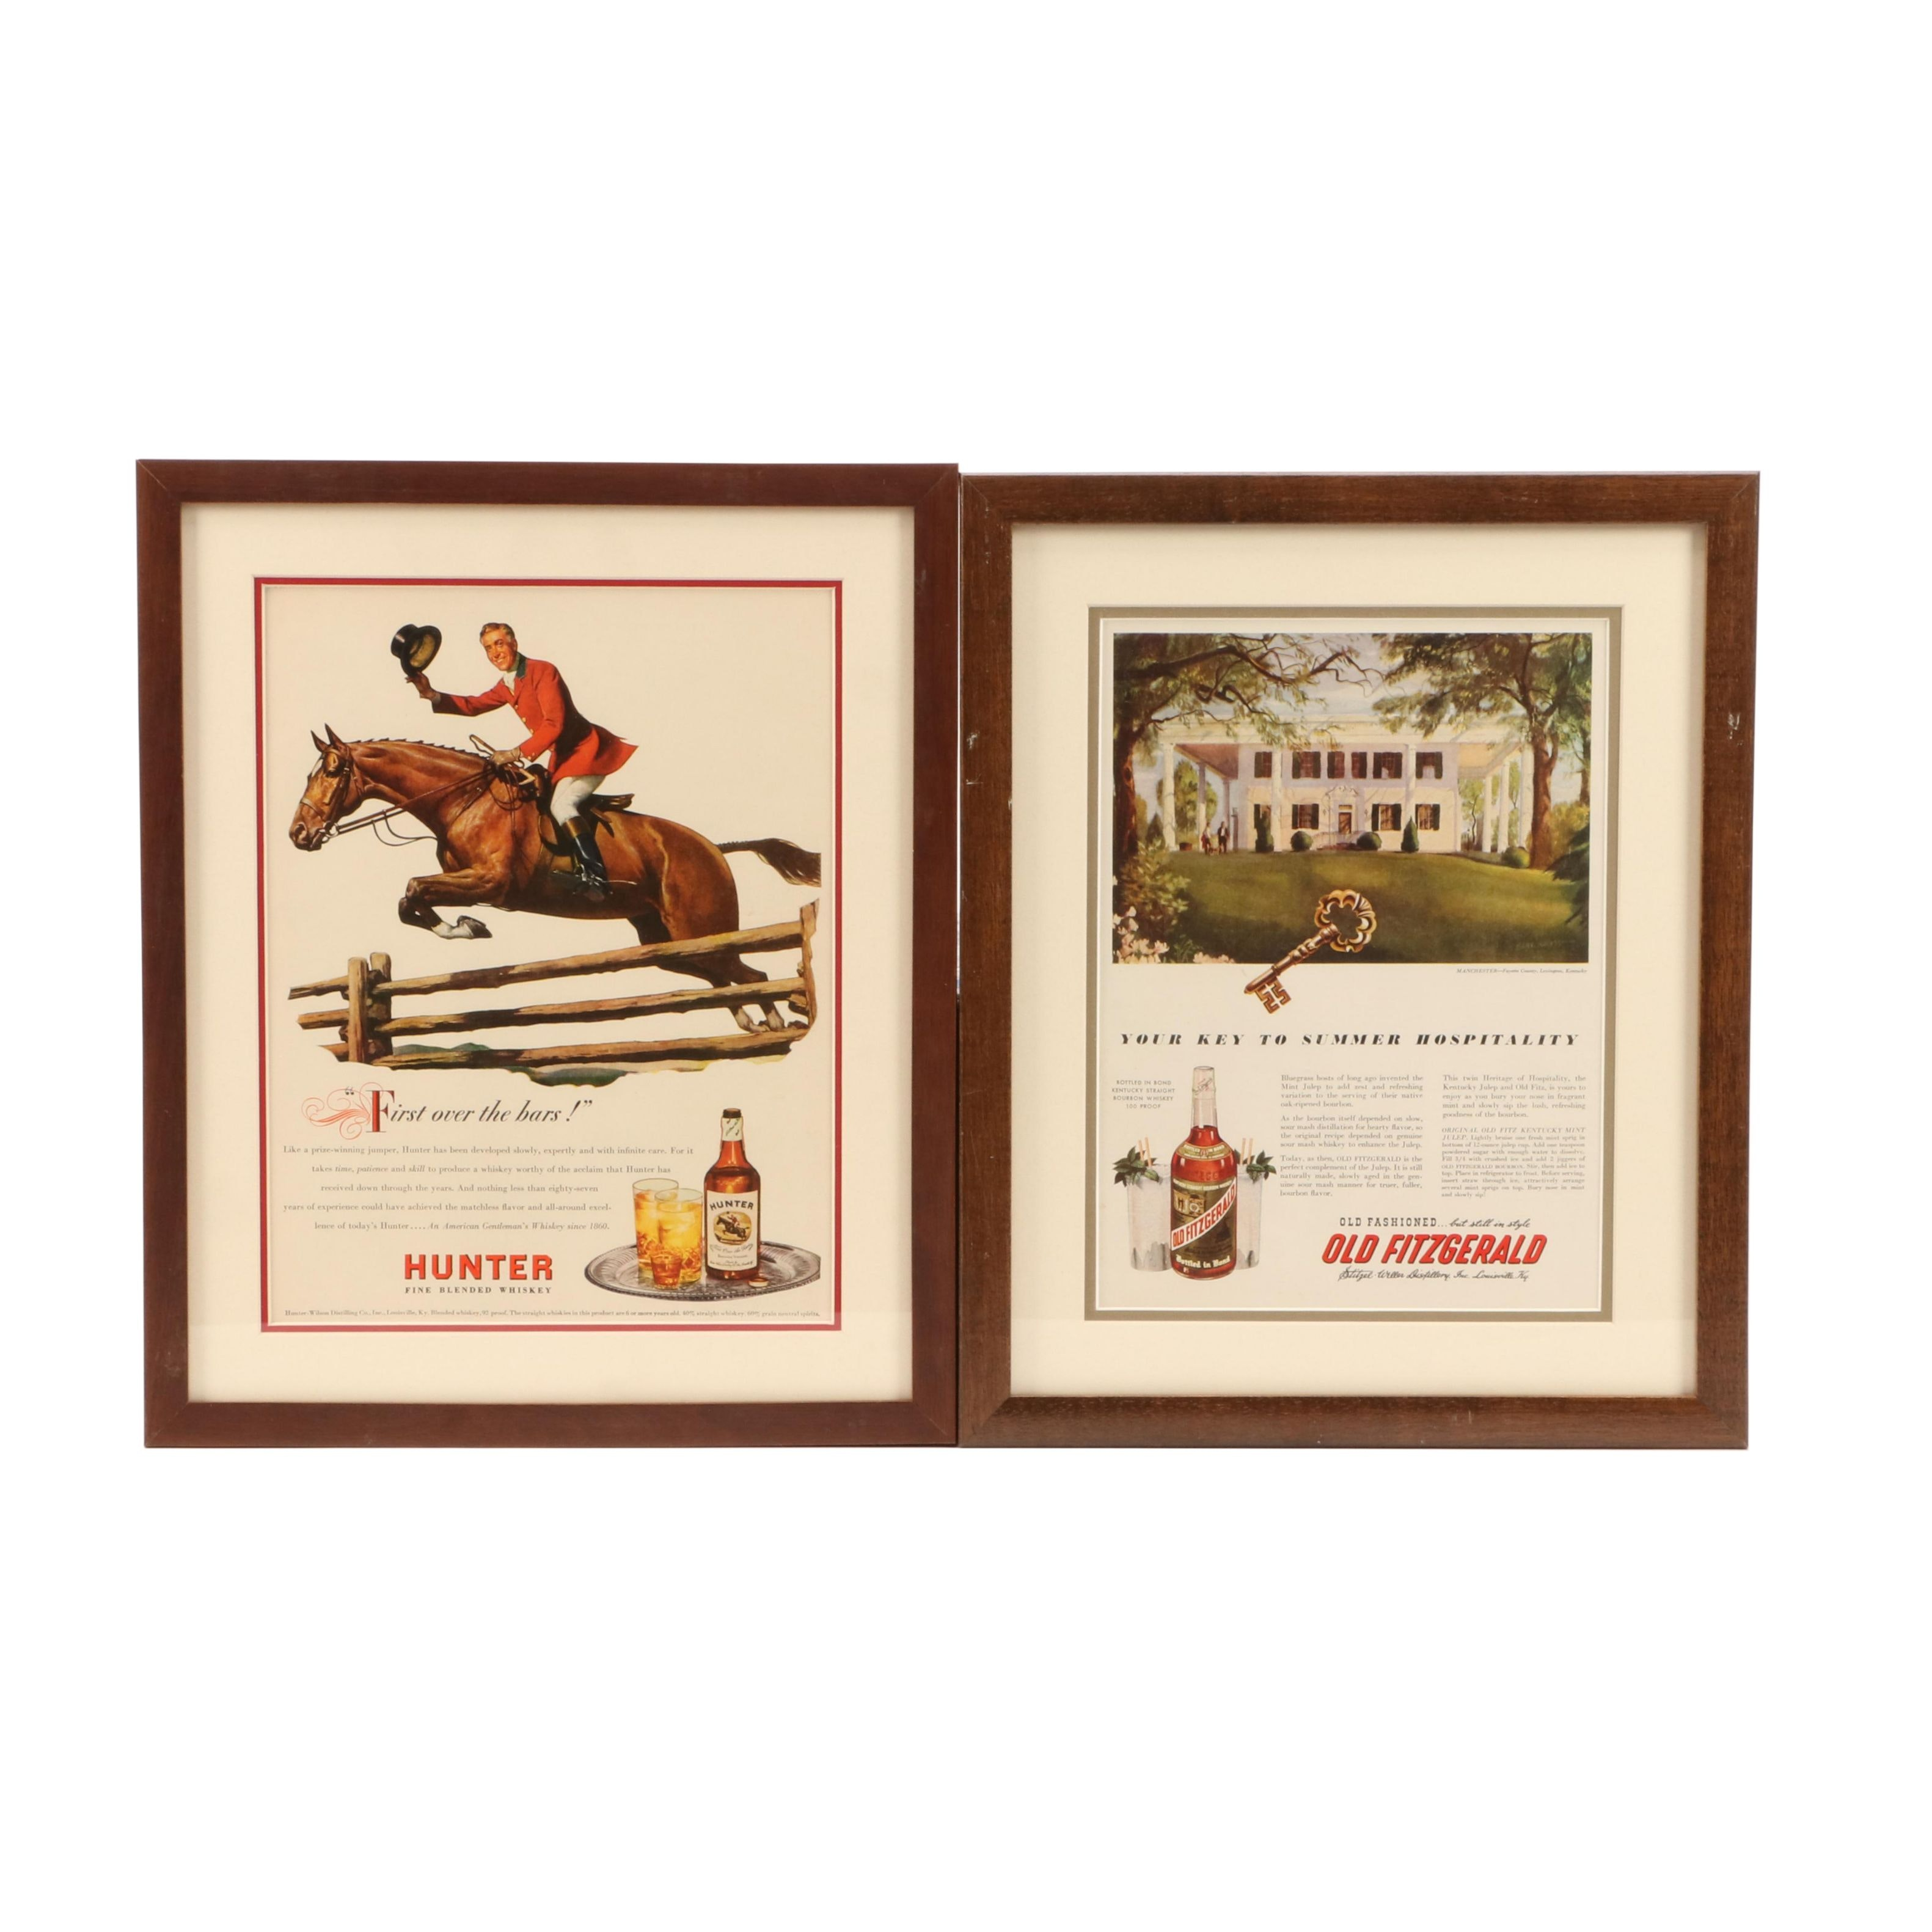 Vintage Life and Time Magazine Ads for Bourbon